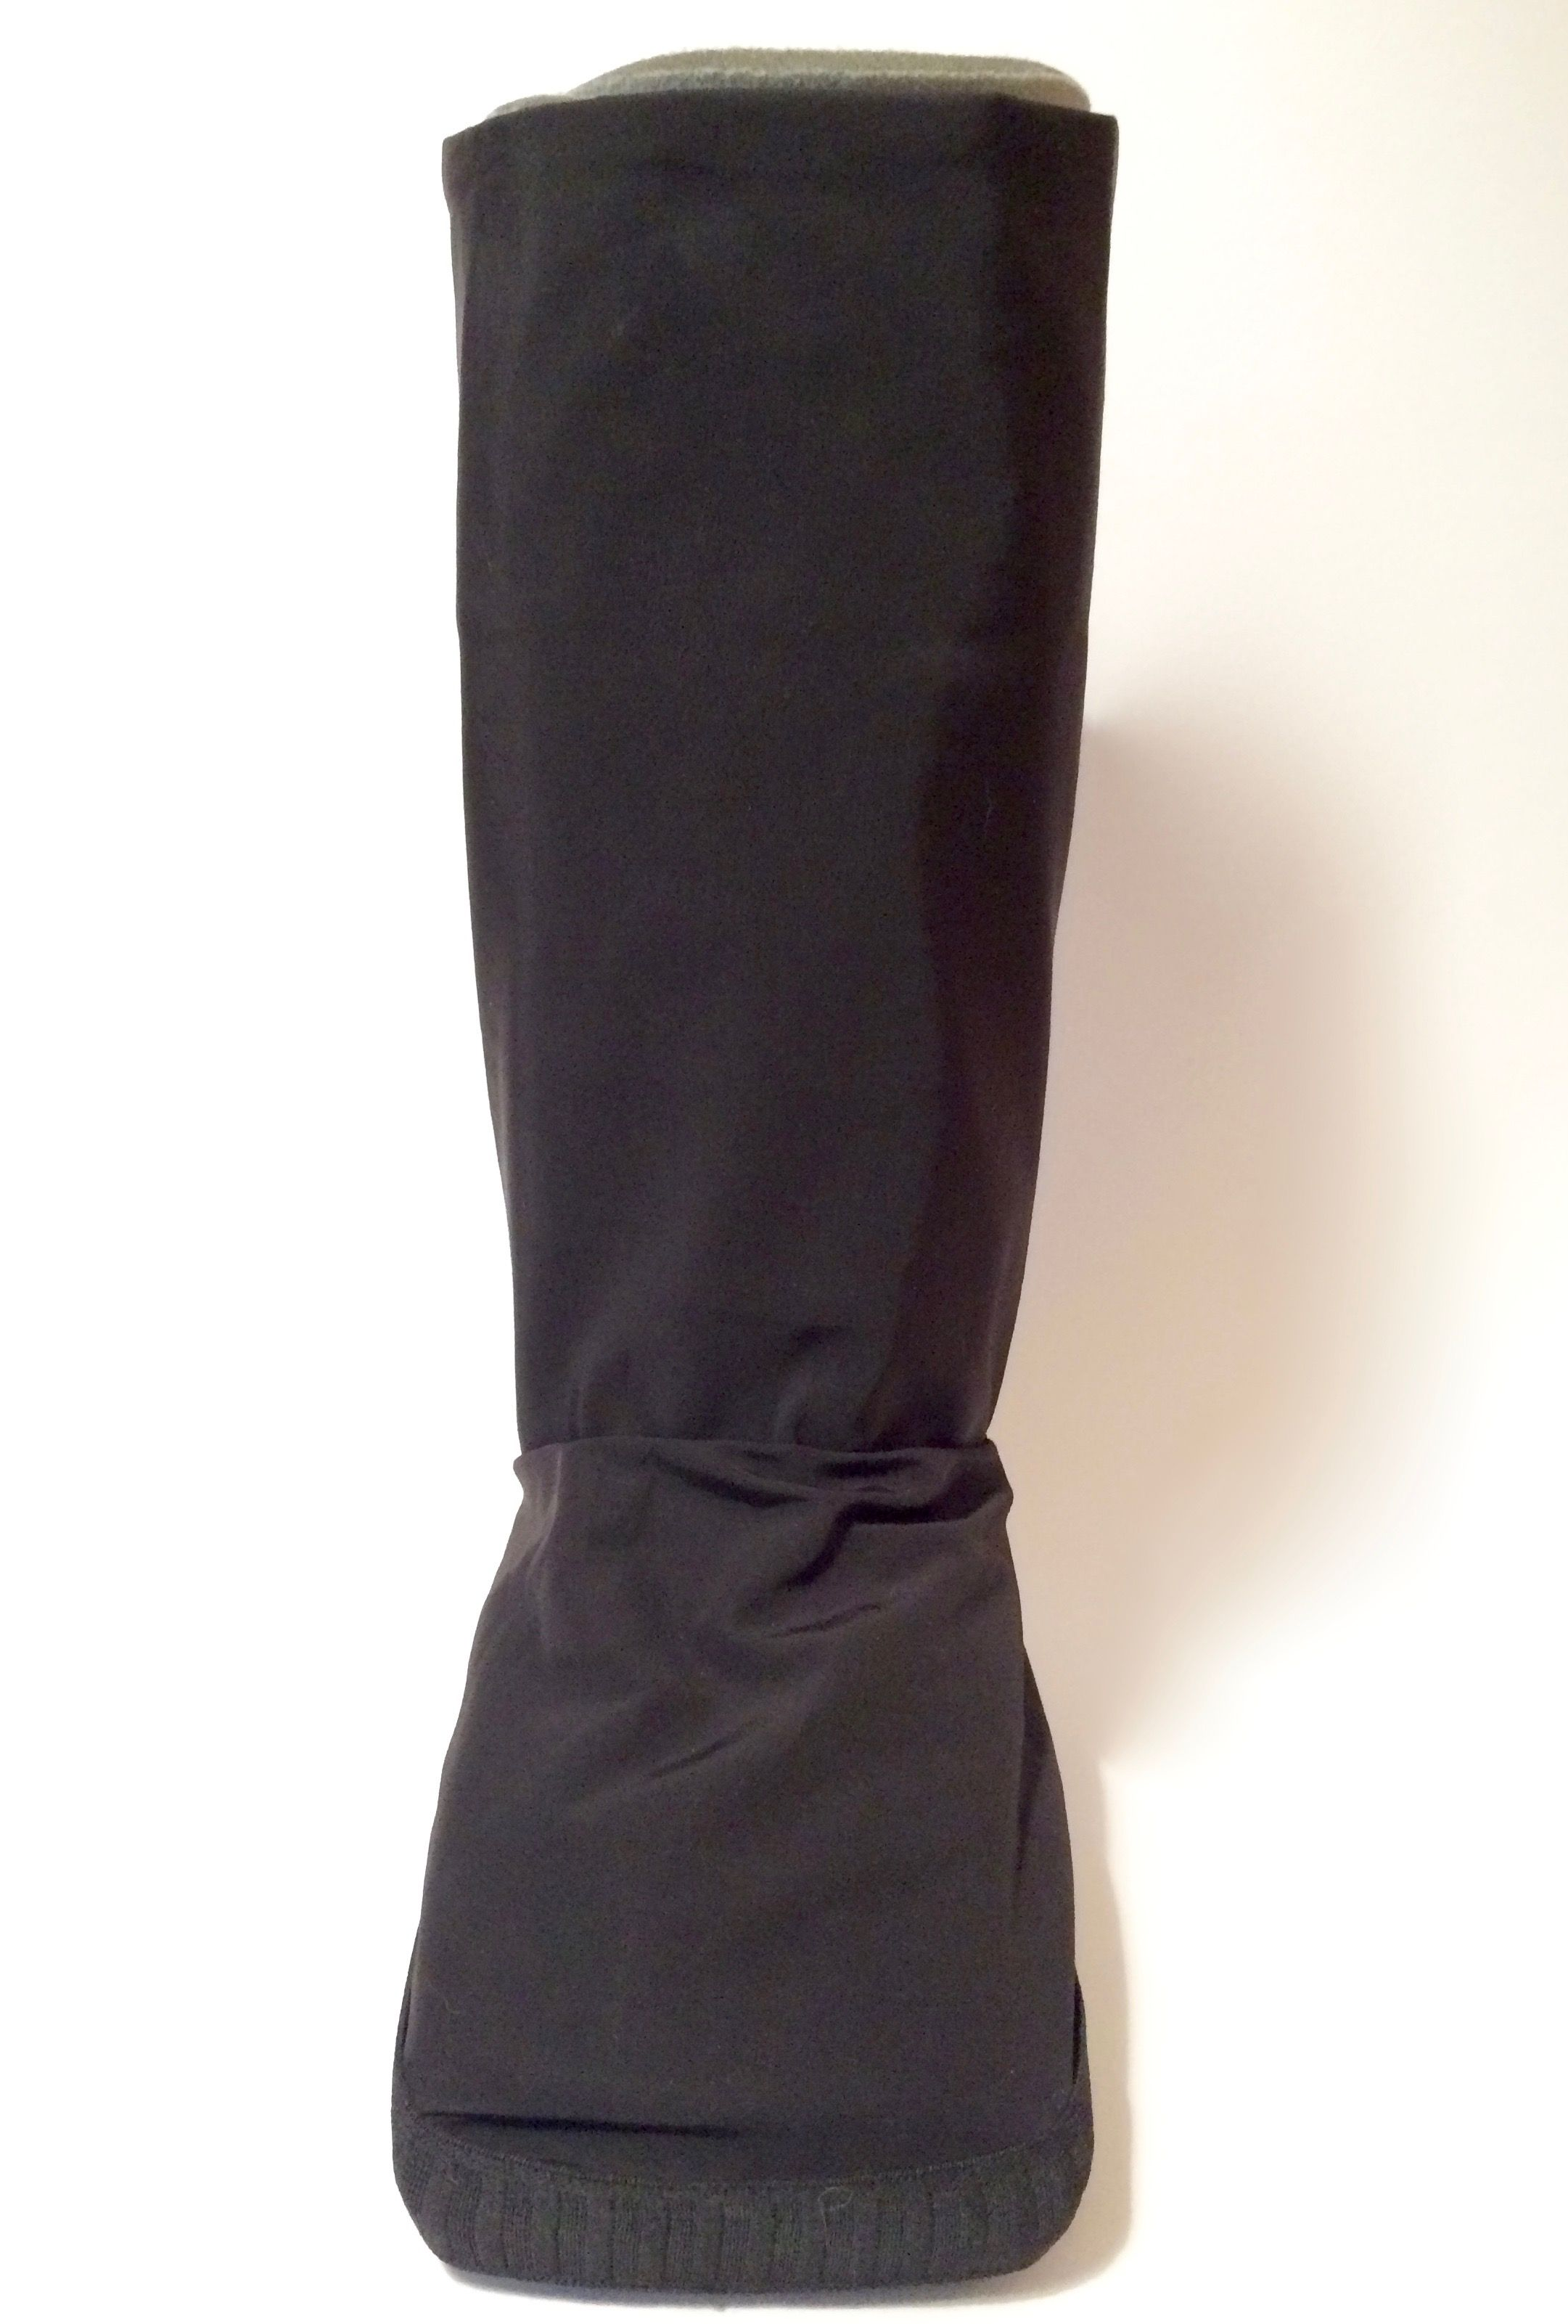 236cb8e6d06 The Portland Rain Boot: a water resistant cover to go over your ...